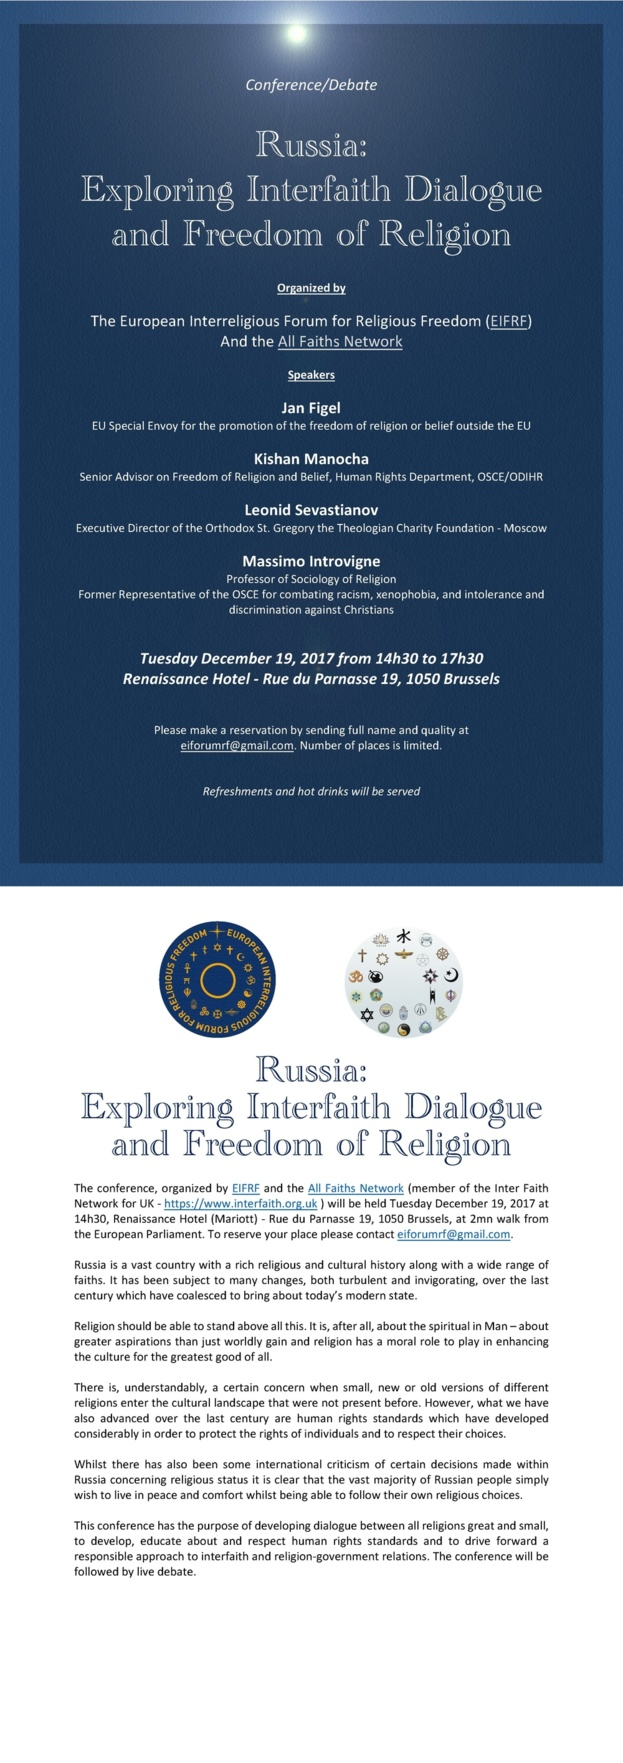 Russia:  Exploring Interfaith Dialogue  and Freedom of Religion - A conference and debate